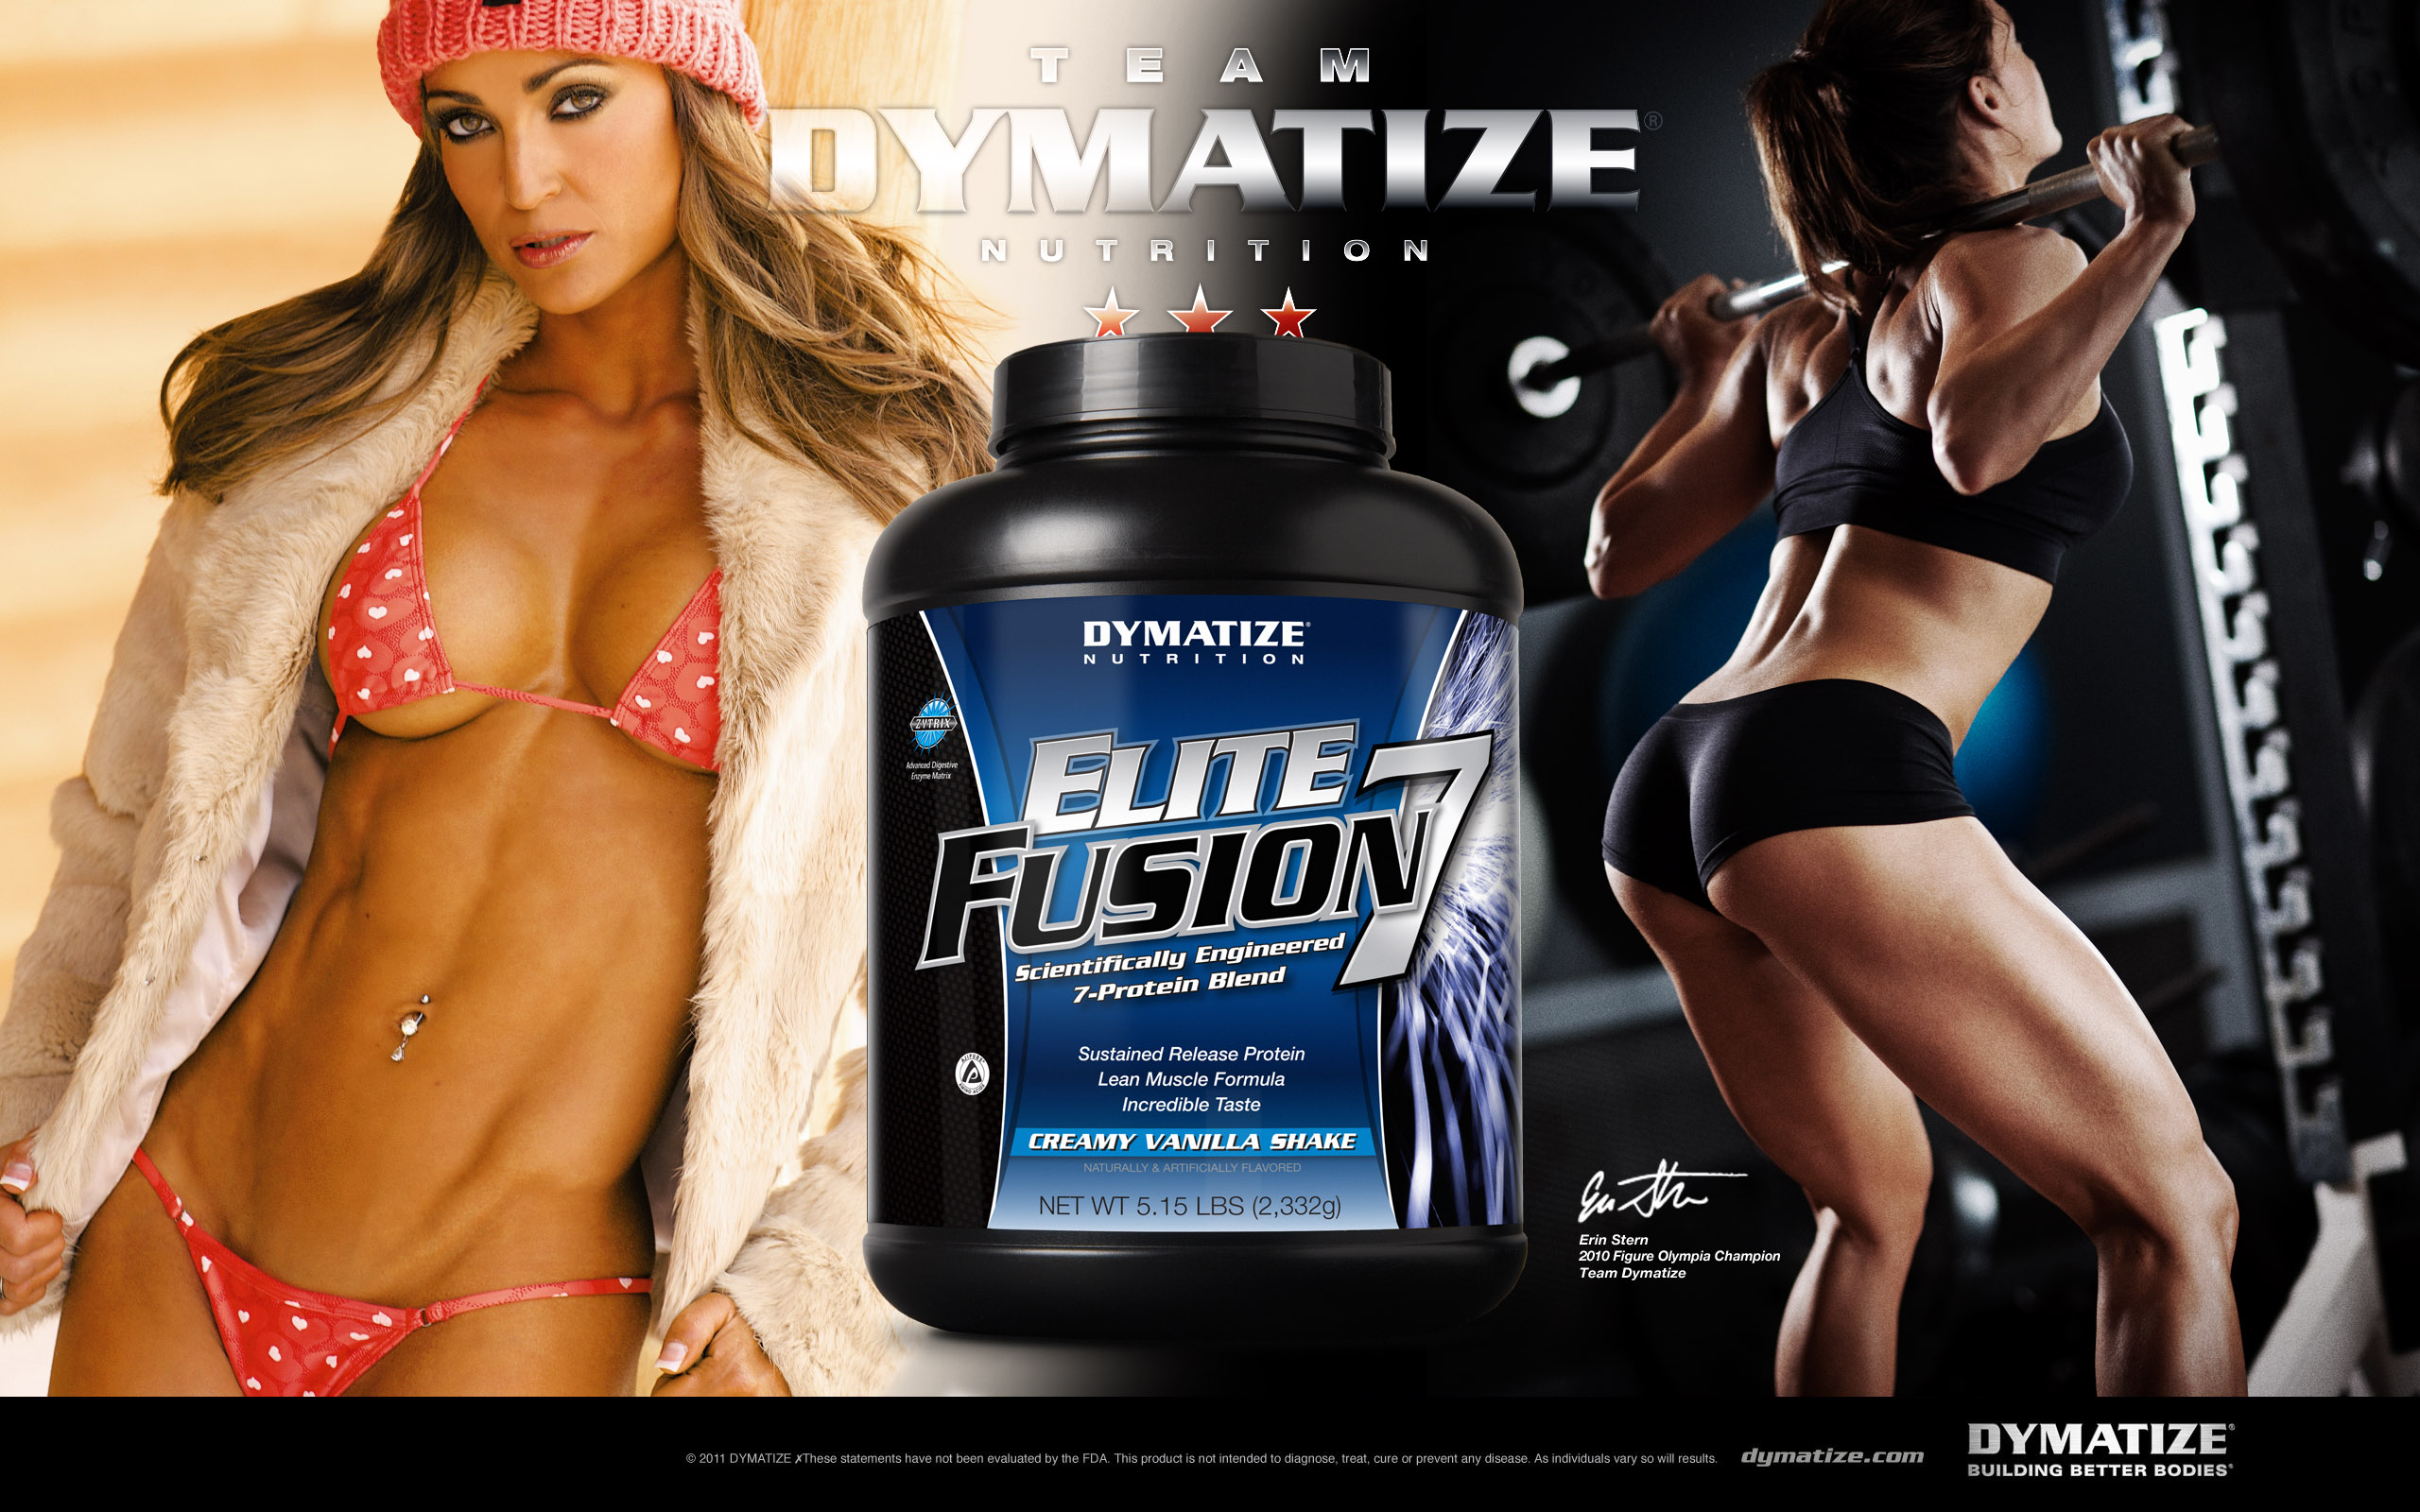 ������ ���� ��������� ������ �� ���������� ���� �� ������ ������� �������������� BSN, Dymatize, Syntrax, Mutant!